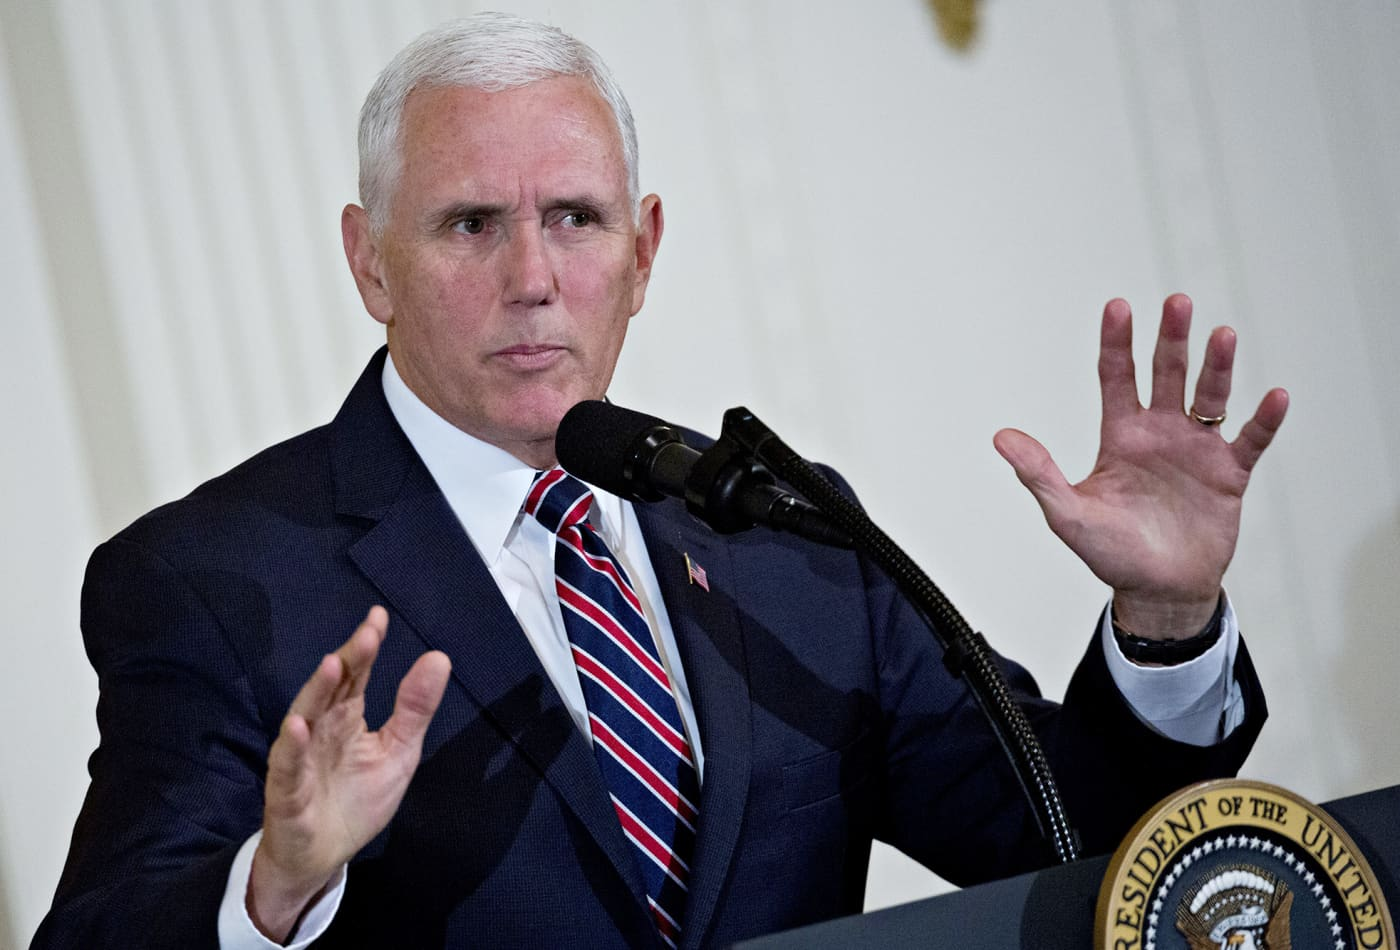 Pence affirms 'Russia meddled in our 2016 elections,' lays out plans to prevent it from happening again